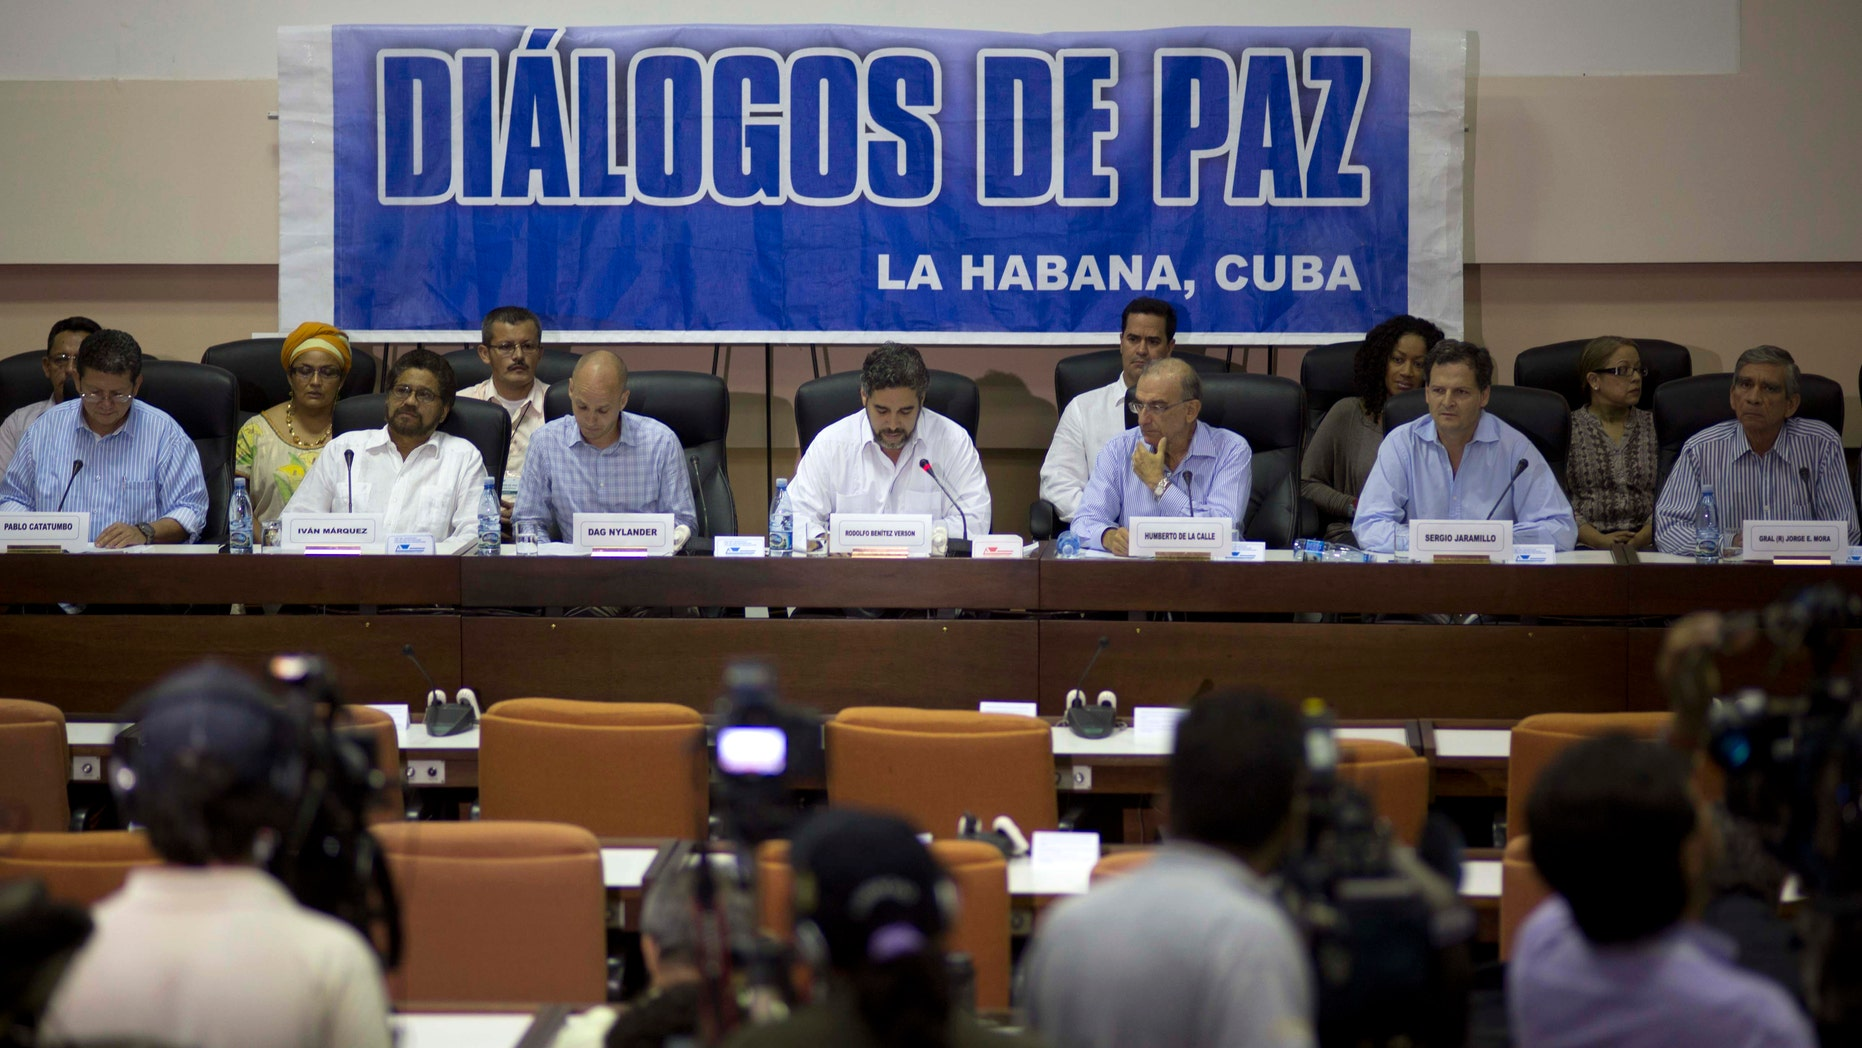 """FILE - In this May 16, 2014 file photo, negotiators from the Revolutionary Armed Forces of Colombia (FARC), left, and Colombia's government, right, give a press conference under a sign that reads in Spanish """"Peace Talks"""" in Havana, Cuba. Colombia's government has rebuffed a unilateral truce declared on Wednesday, Dec. 18, 2014 by the country's largest rebel group, saying conditions demanded by the guerrillasâ are unacceptable until a peace deal is reached. Sitting at the table, from left, are chief of the western bloc of the FARC Pablo Catatumbo, FARC chief negotiator Ivan Marquez, Norwegian guarantor Dag Nylander, Cuban guarantor Rodolfo Benitez Verson, head of Colombia's government team Humberto de la Calle, government negotiator Sergio Jaramillo, and government negotiator Gen. Jorge Mora. (AP Photo/Ramon Espinosa, File)"""